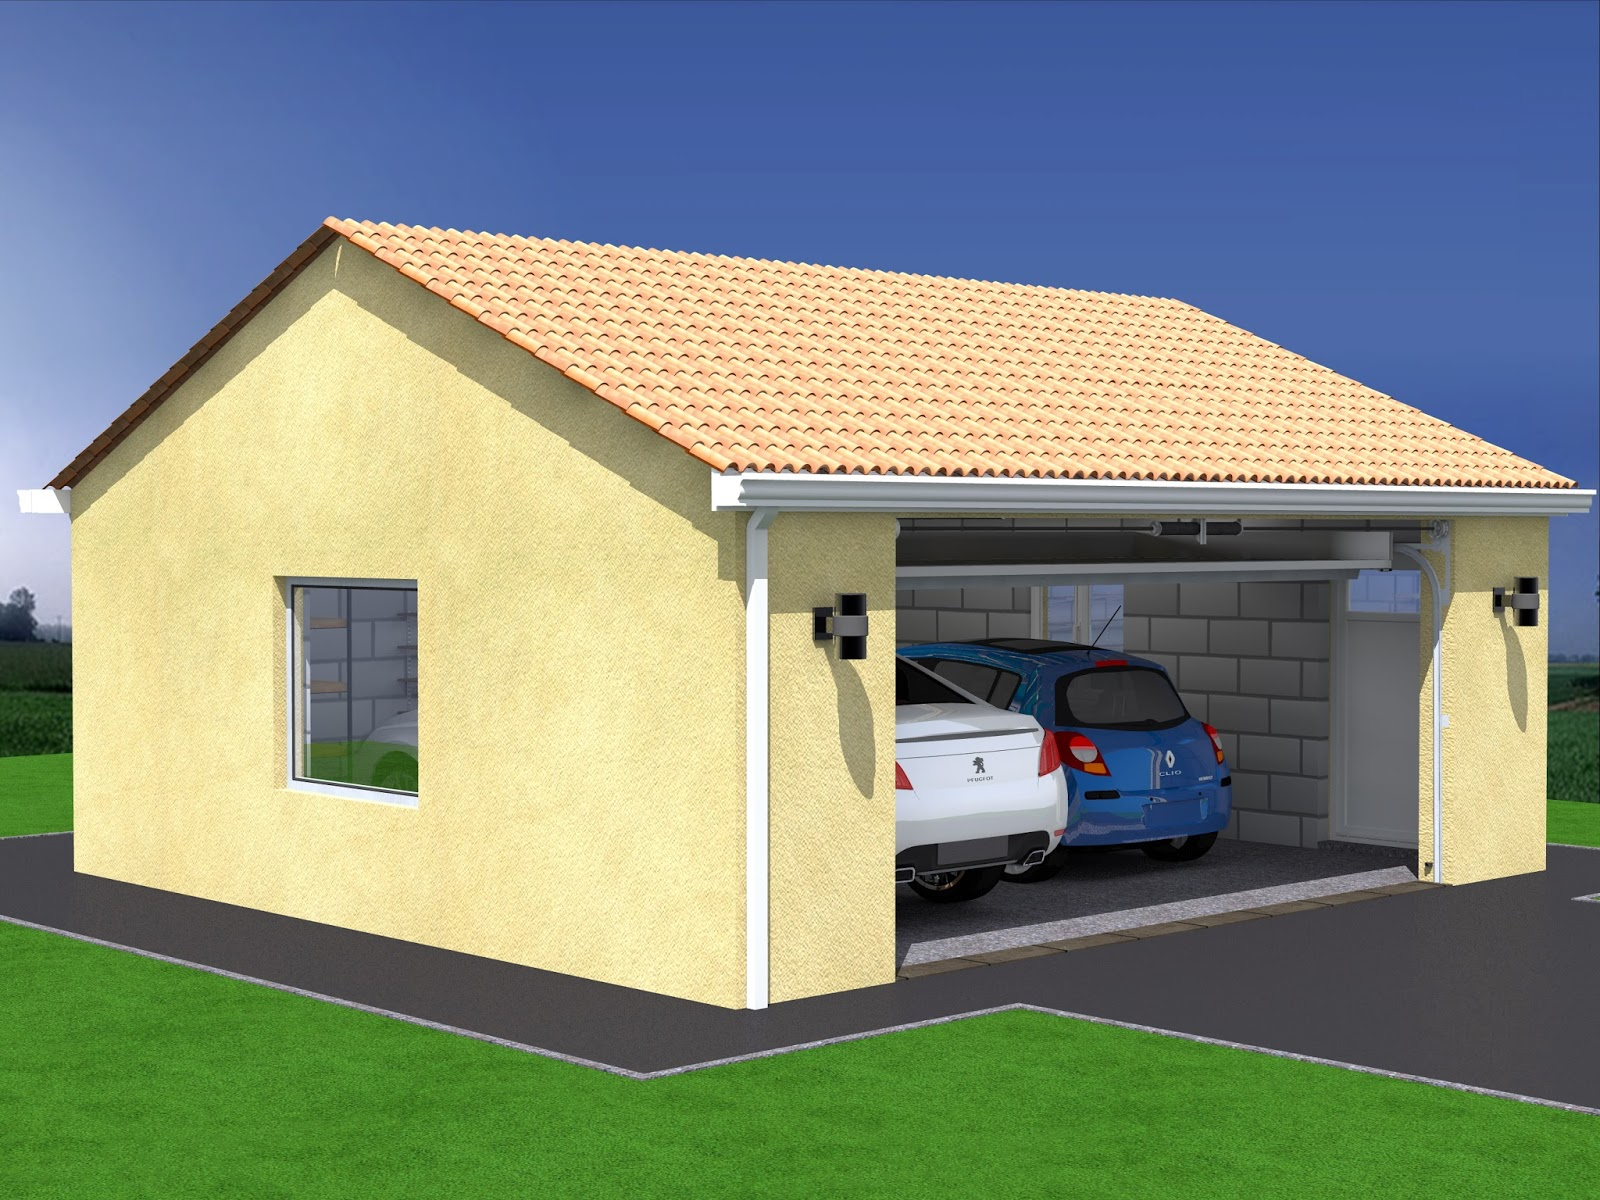 Cout de construction d un garage co t de construction d for Construire un garage attenant a la maison